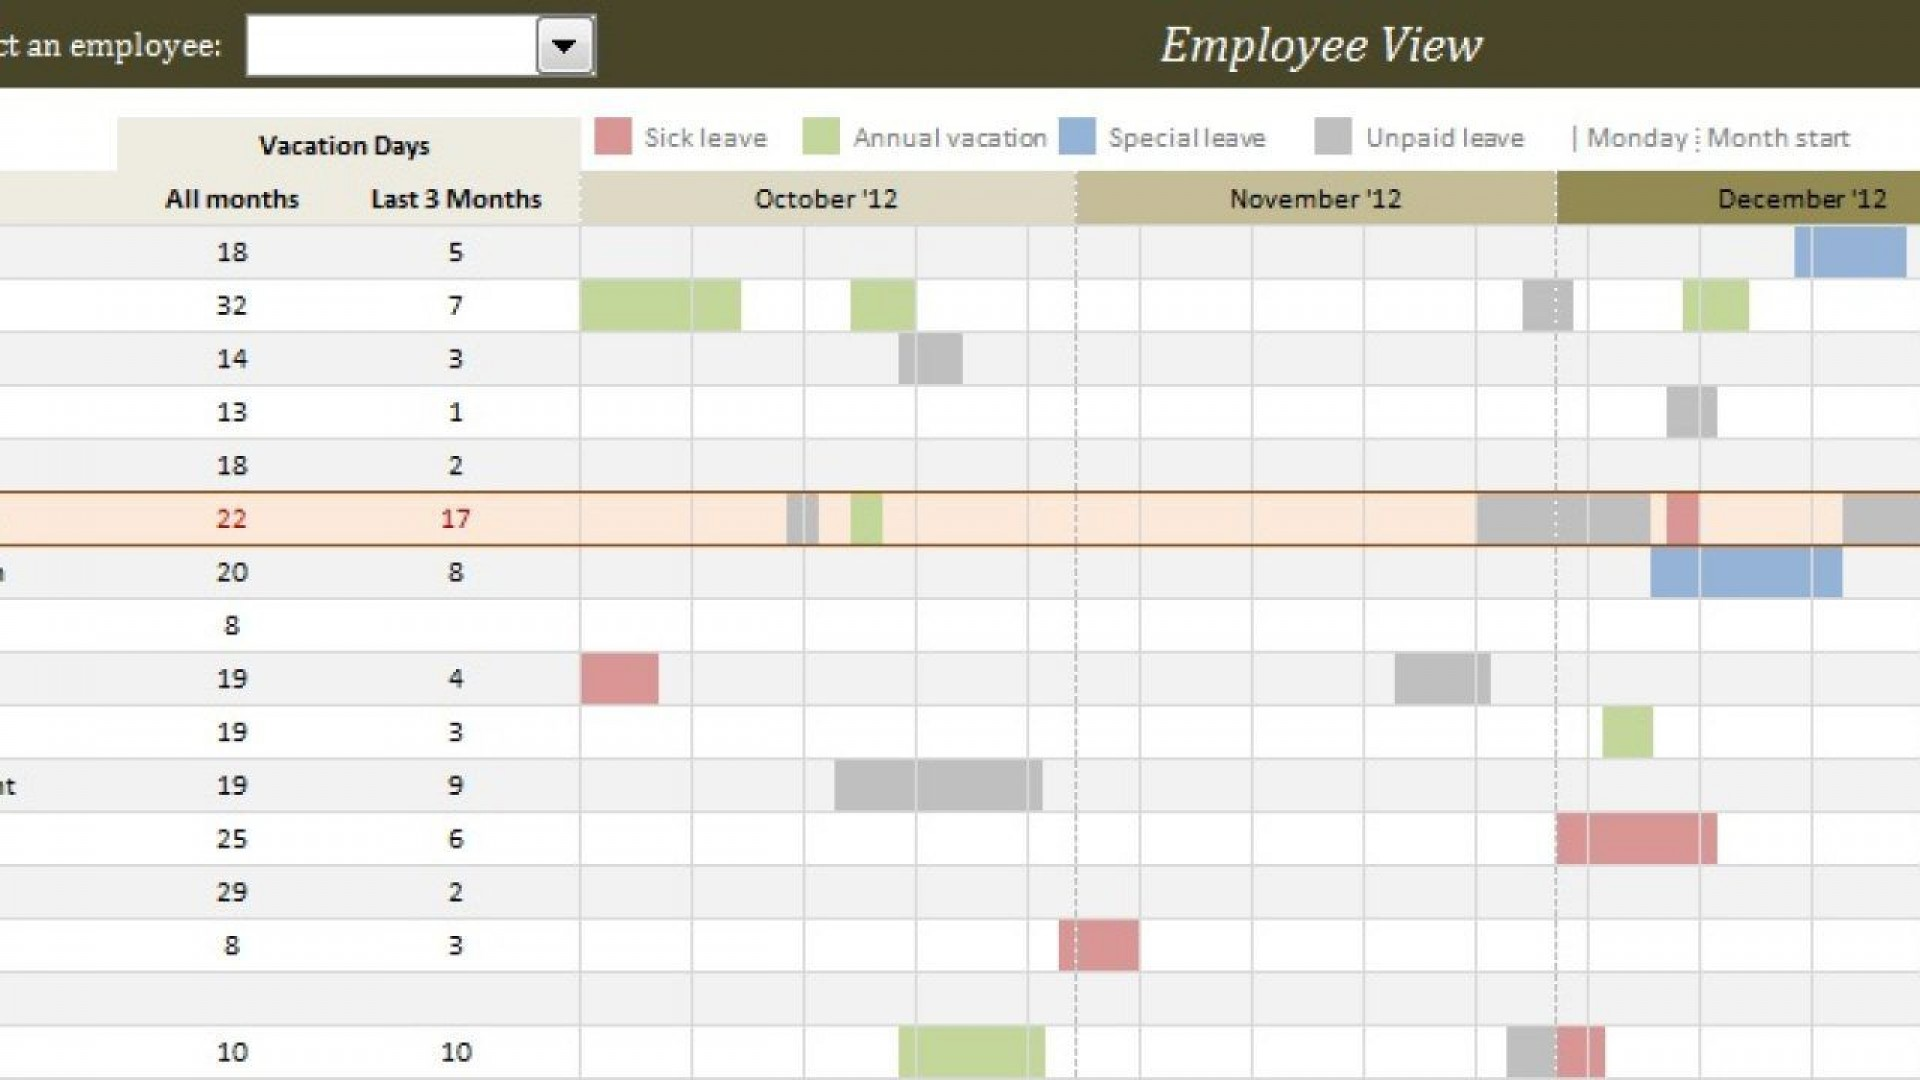 006 Shocking Employee Calendar Template Excel Picture  Staff Leave Vacation Planner1920